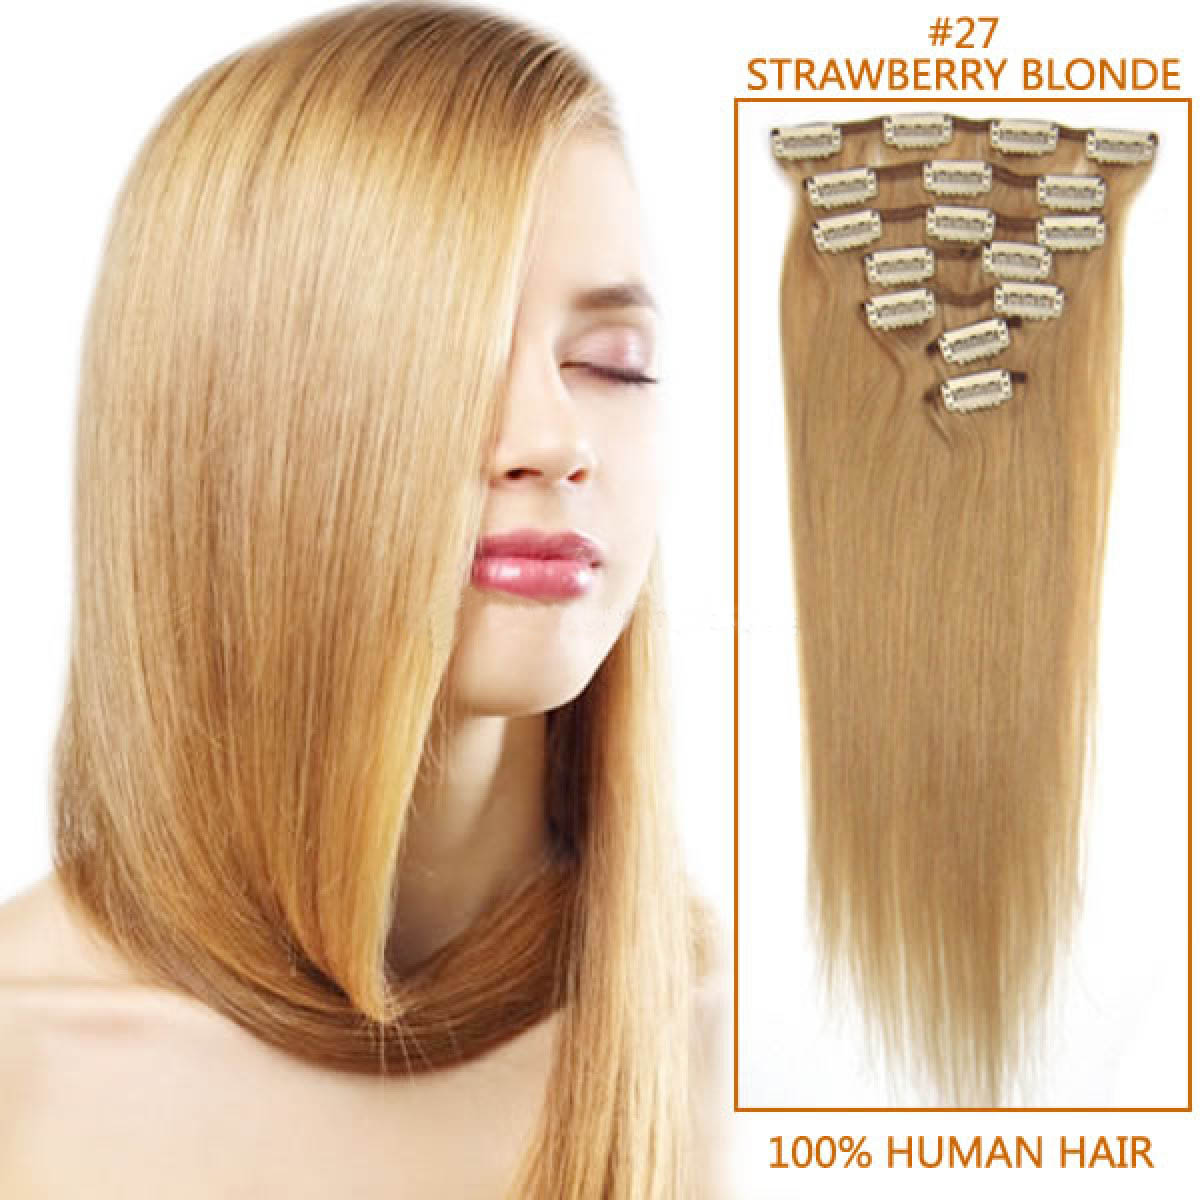 28 Inch 27 Strawberry Blonde Clip In Remy Human Hair Extensions 7pcs